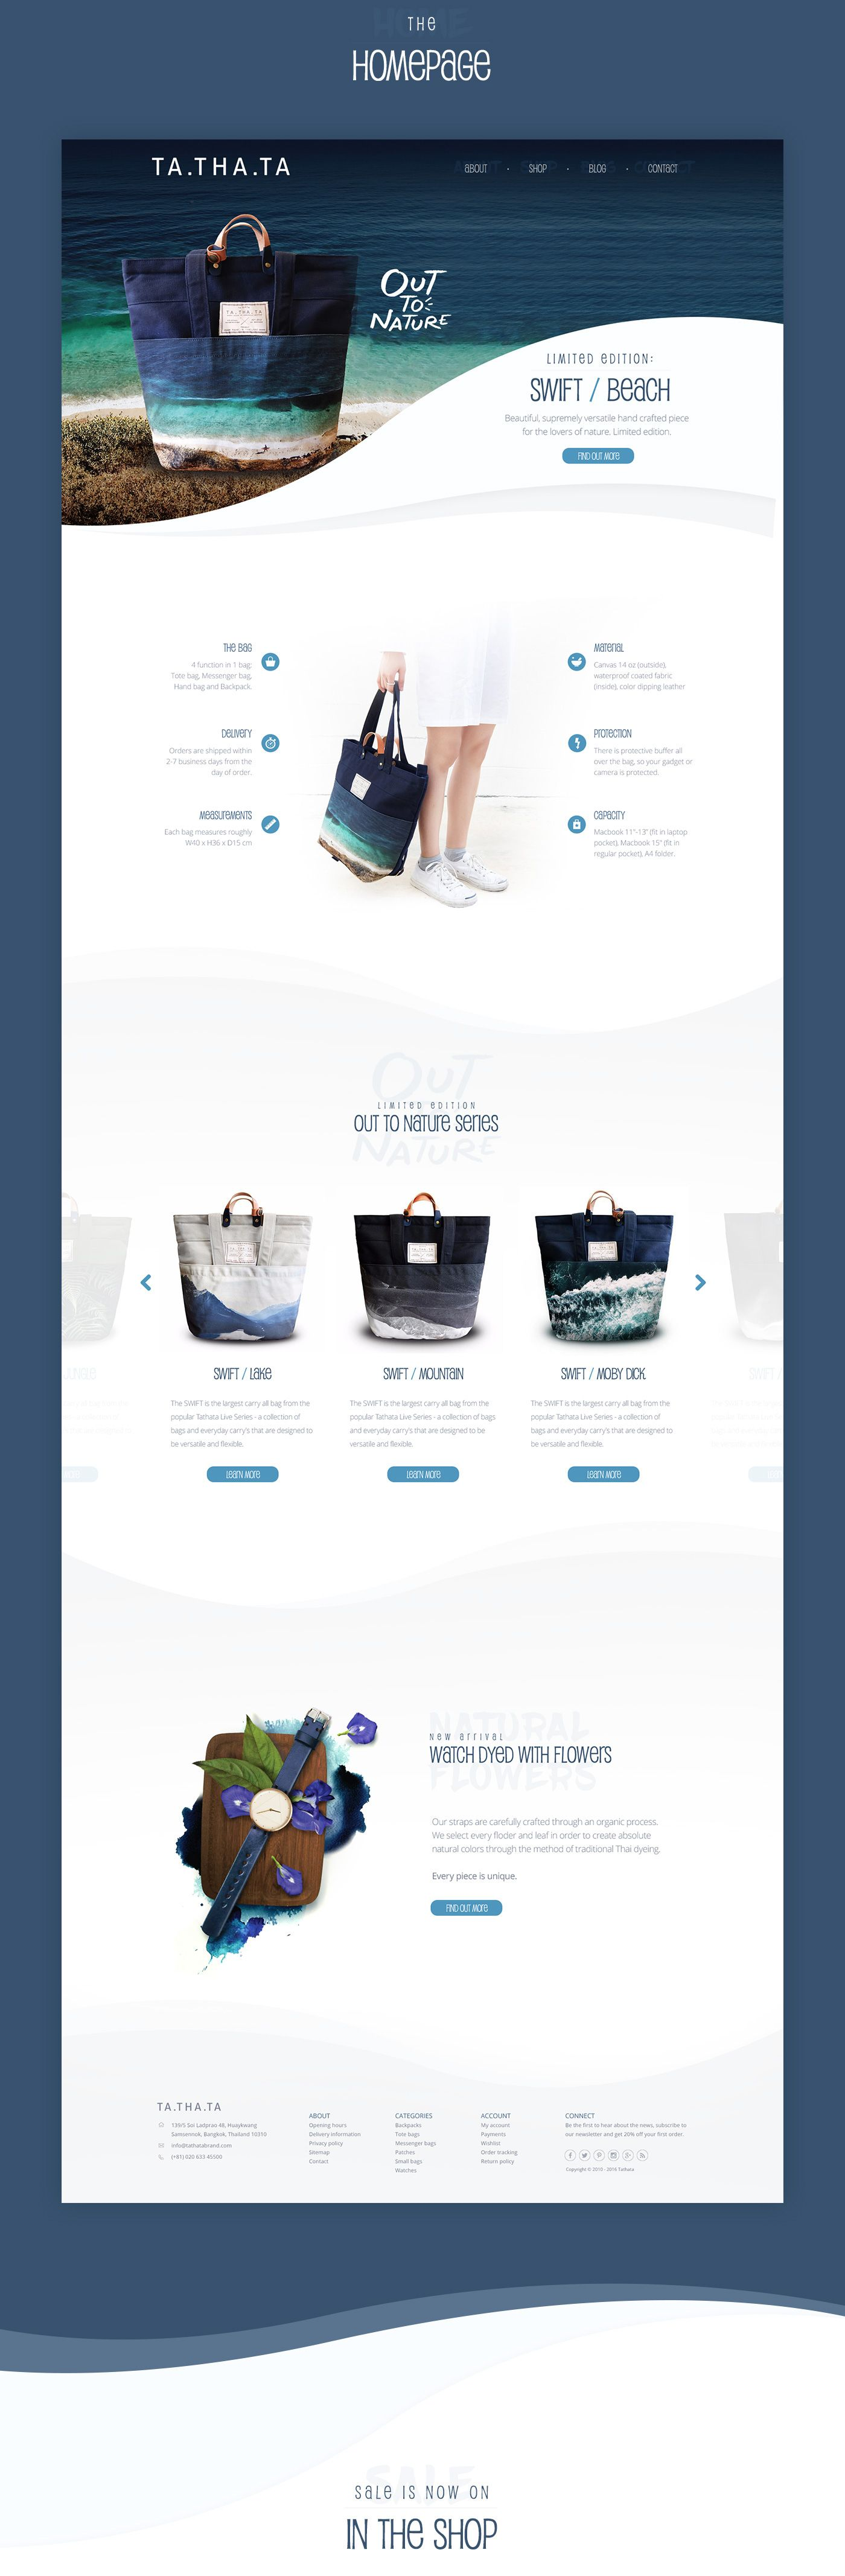 Personal Project For The Independent Accessories Brand Tathata This Is A Concept Project All Images Included Creative Web Design Web Layout Design Web Design